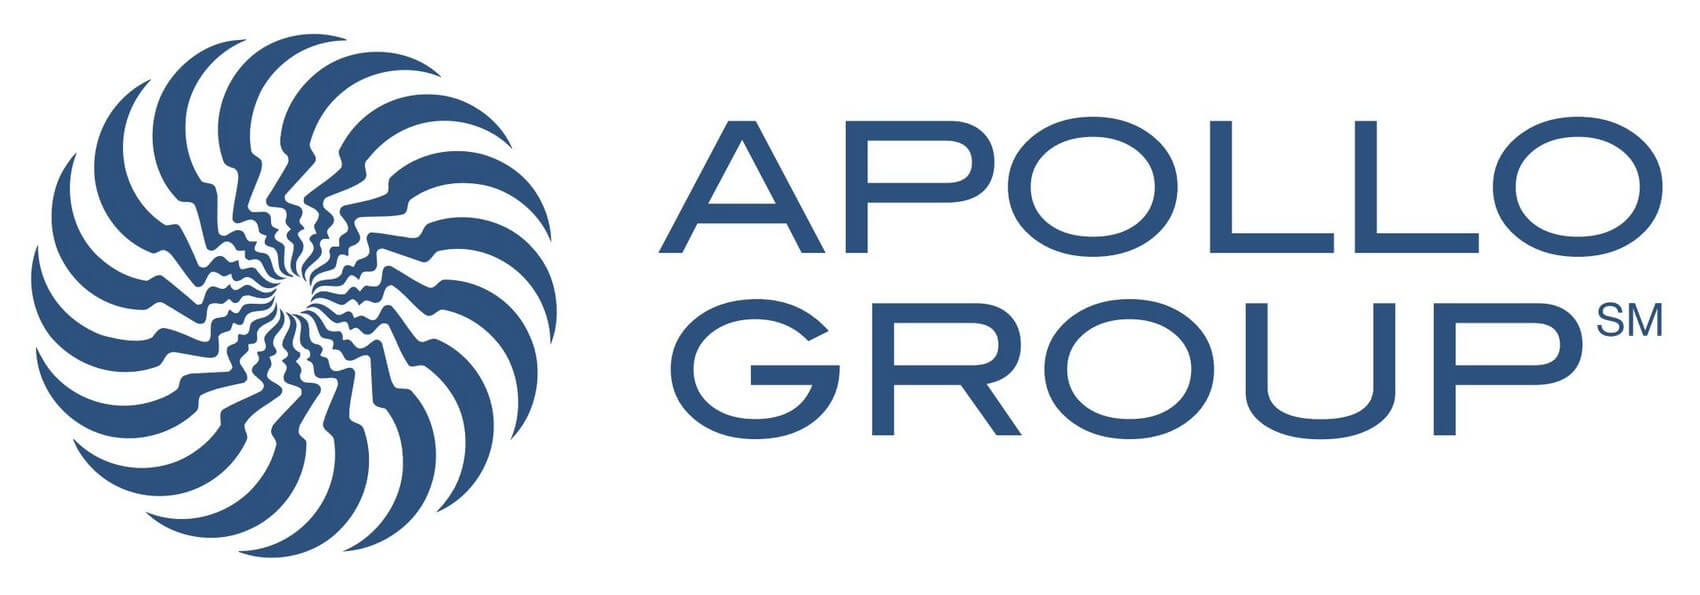 Apollo Group Logo png